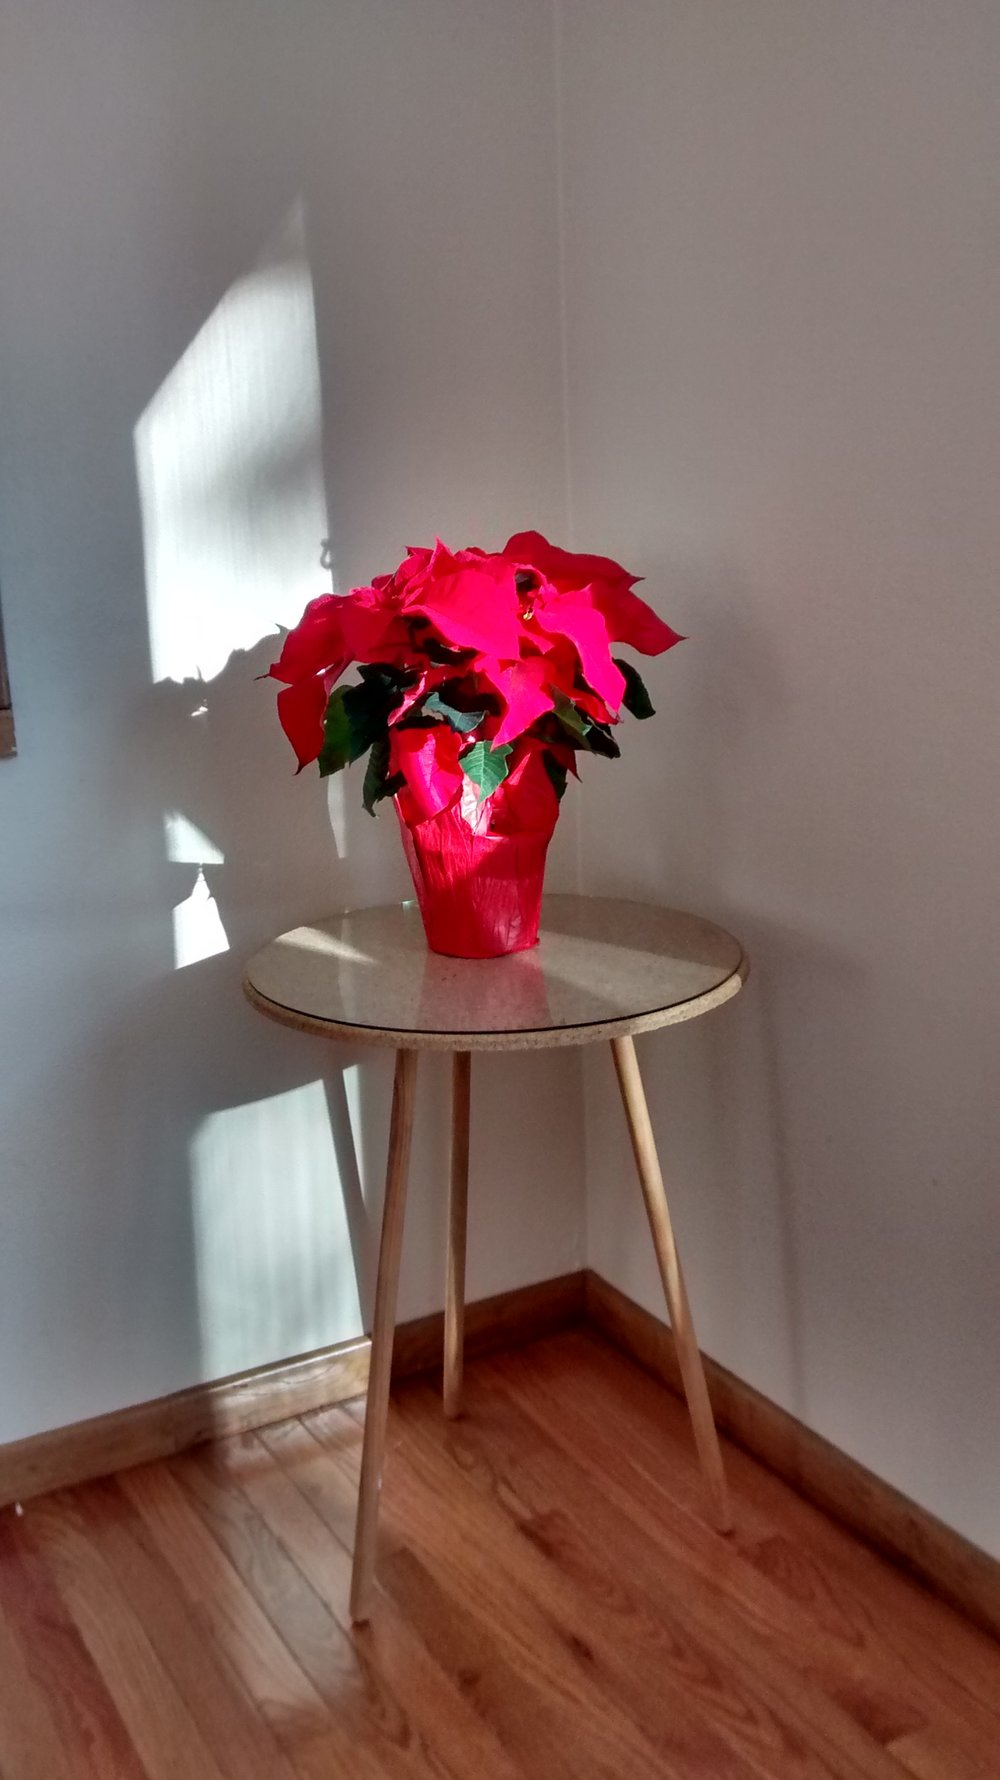 Easy poinsettia combined with a table that will look a lot nicer once I find the tablecloth that goes with it.